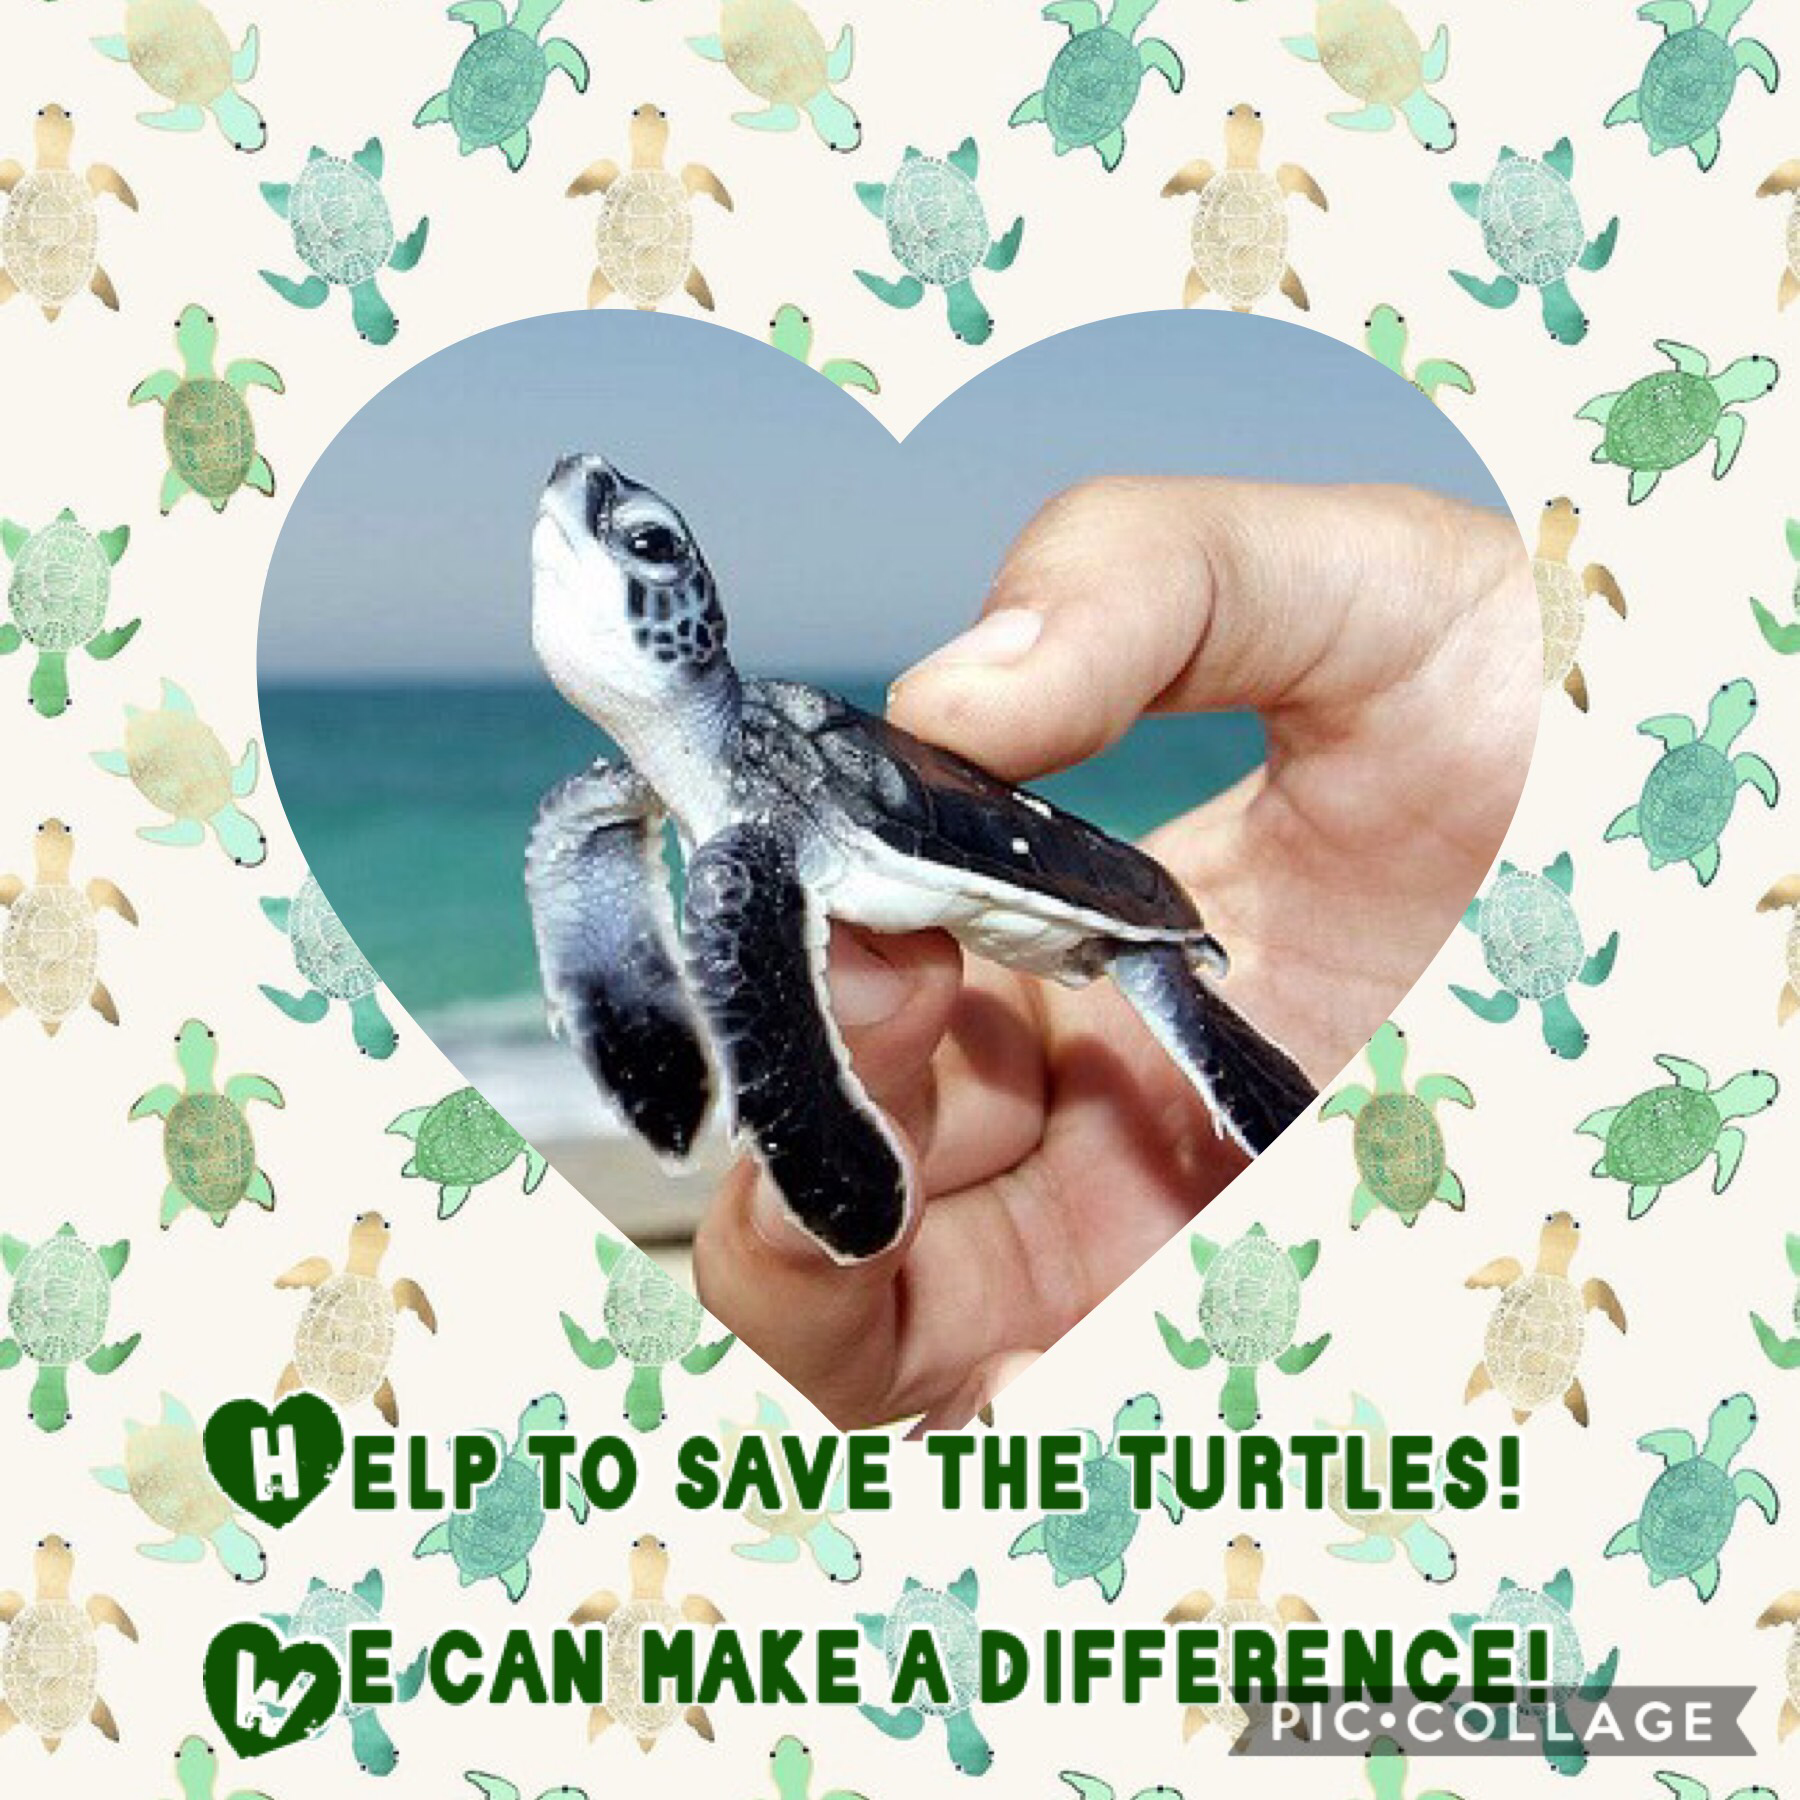 Please share this pic collage with other people to help save turtles 🐢!! Comment down below what you favorite animal is and like this pic collage!!